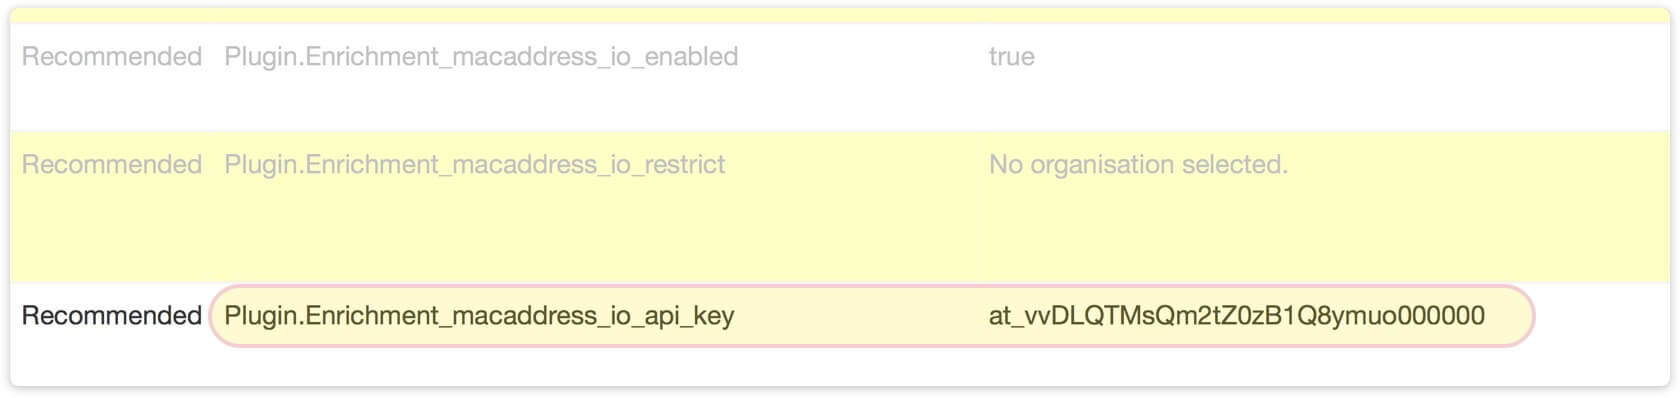 Provide your API key by setting the Plugin.Enrichment_macaddress_io_api_key value